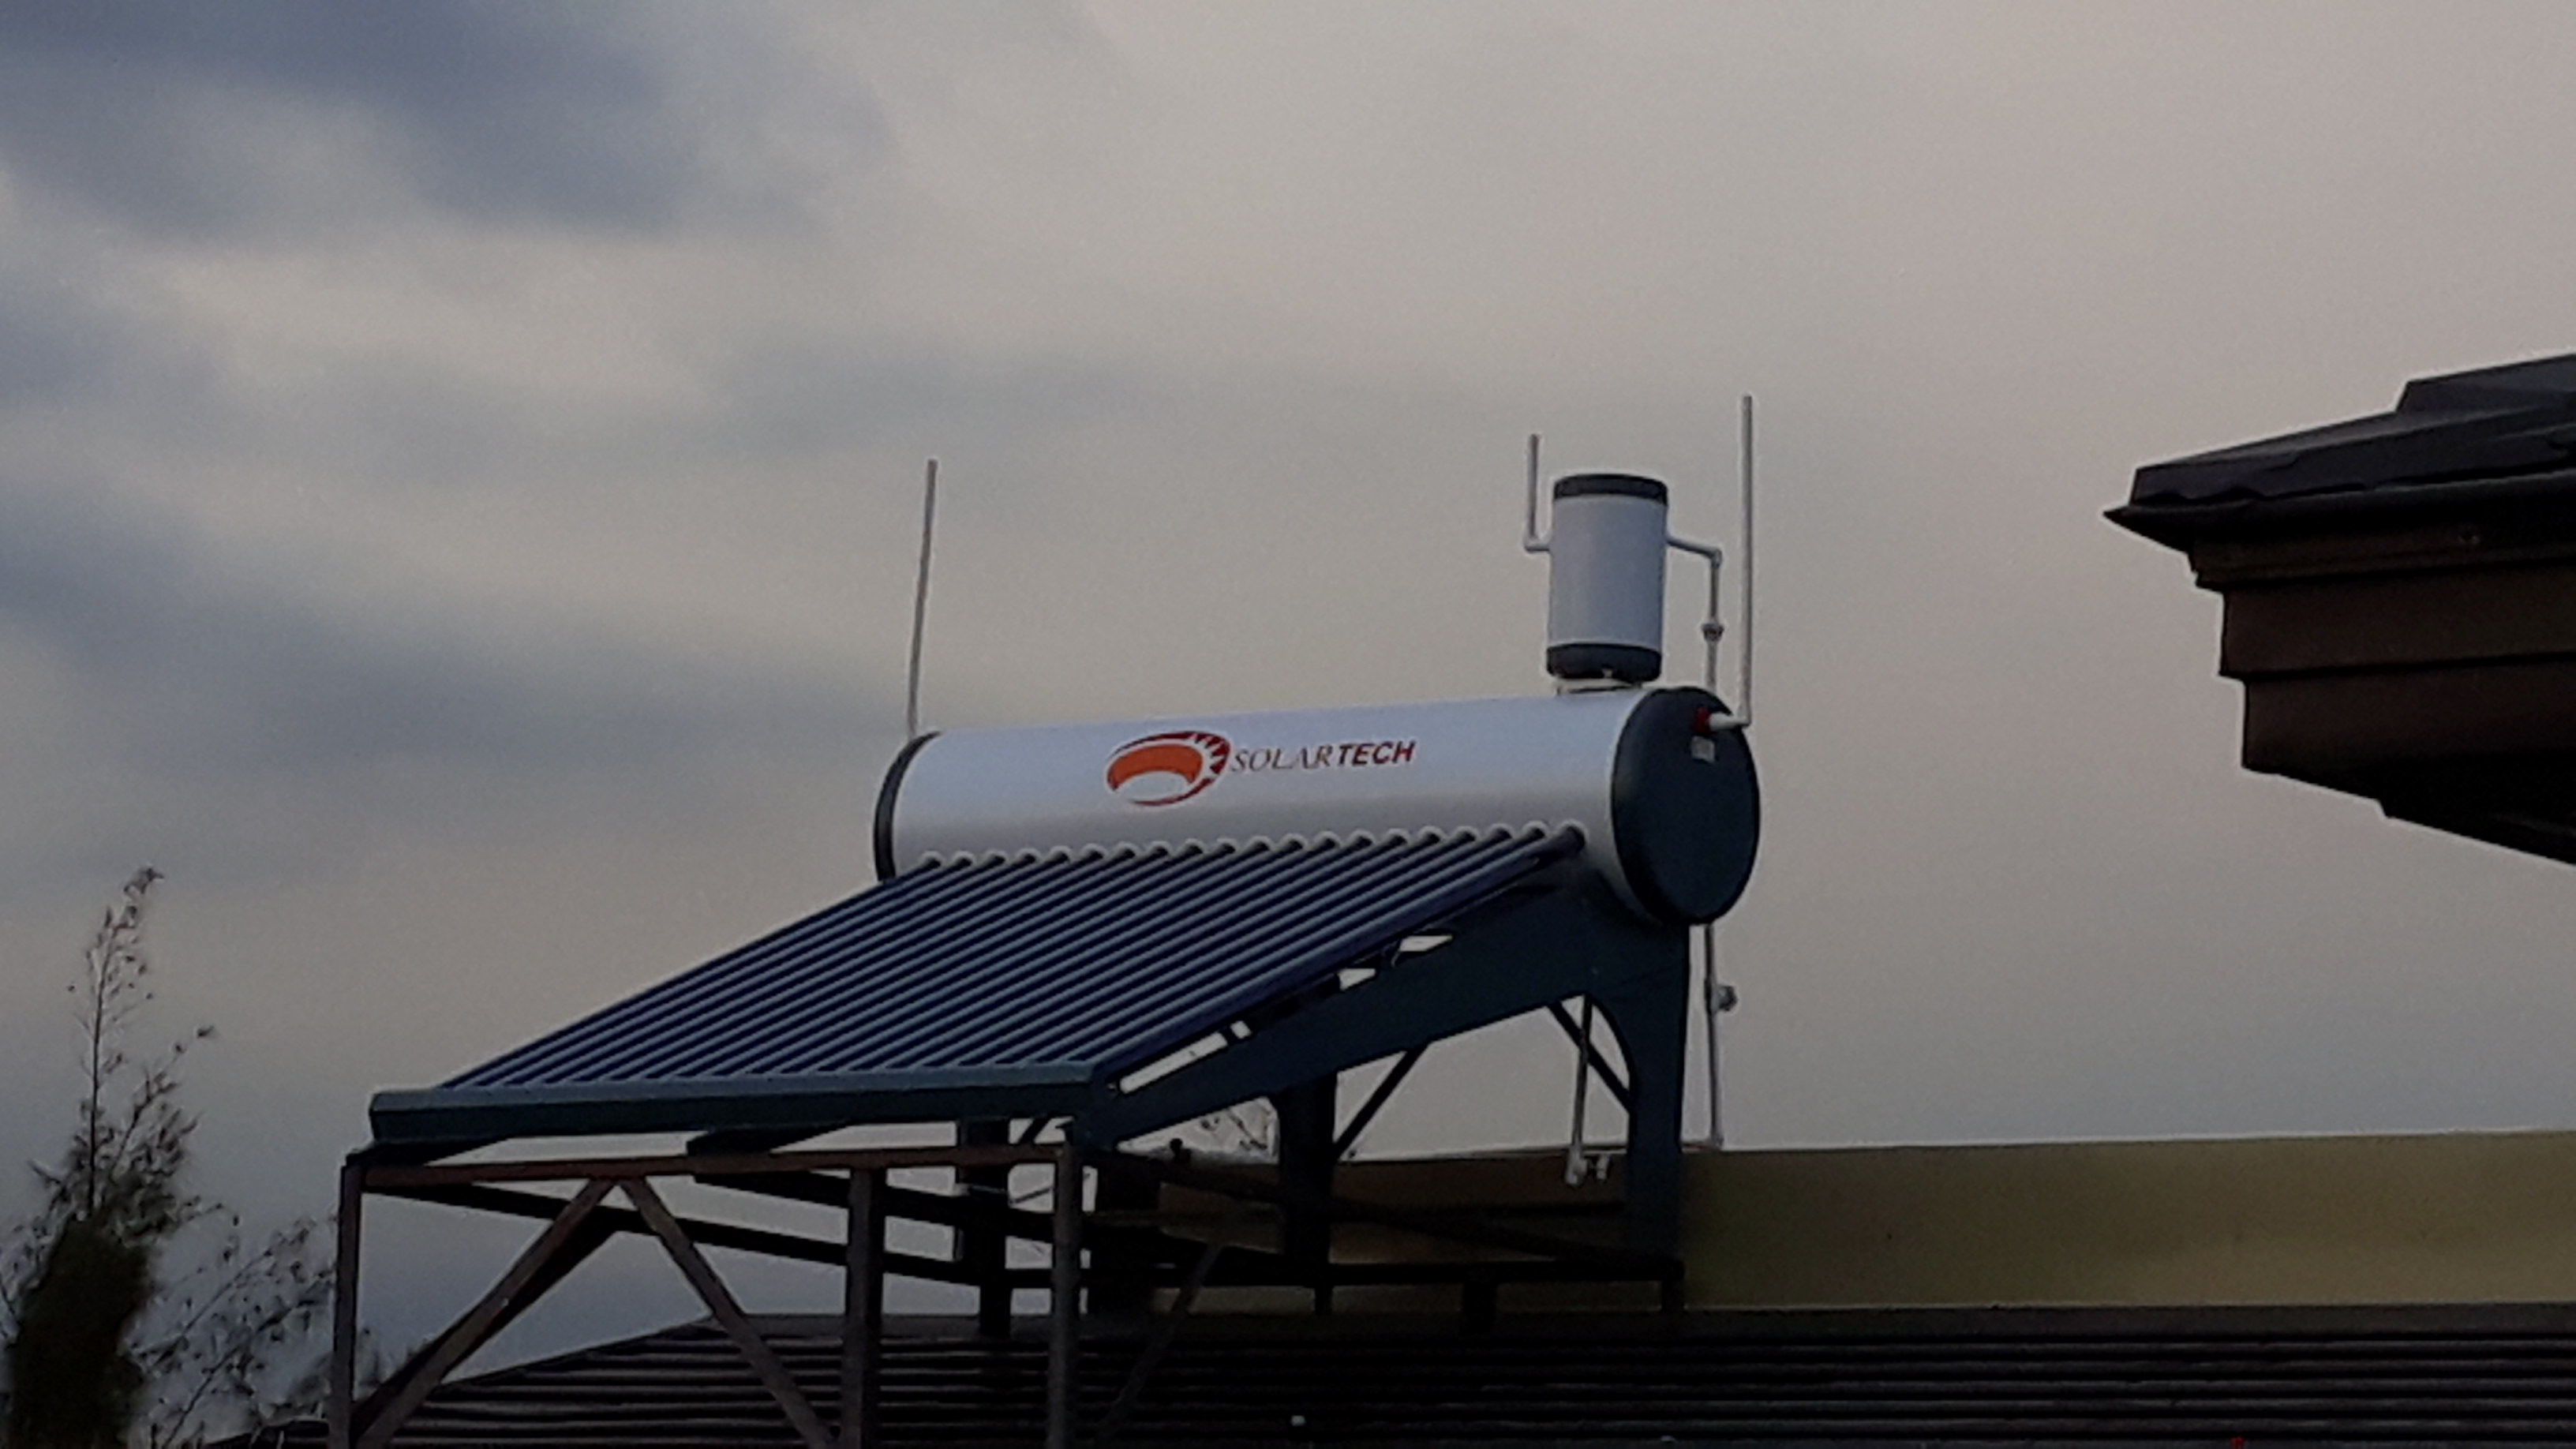 Solartech Solar Water Heater 200L Installation – Greenwoods Executive Village, Pasig City